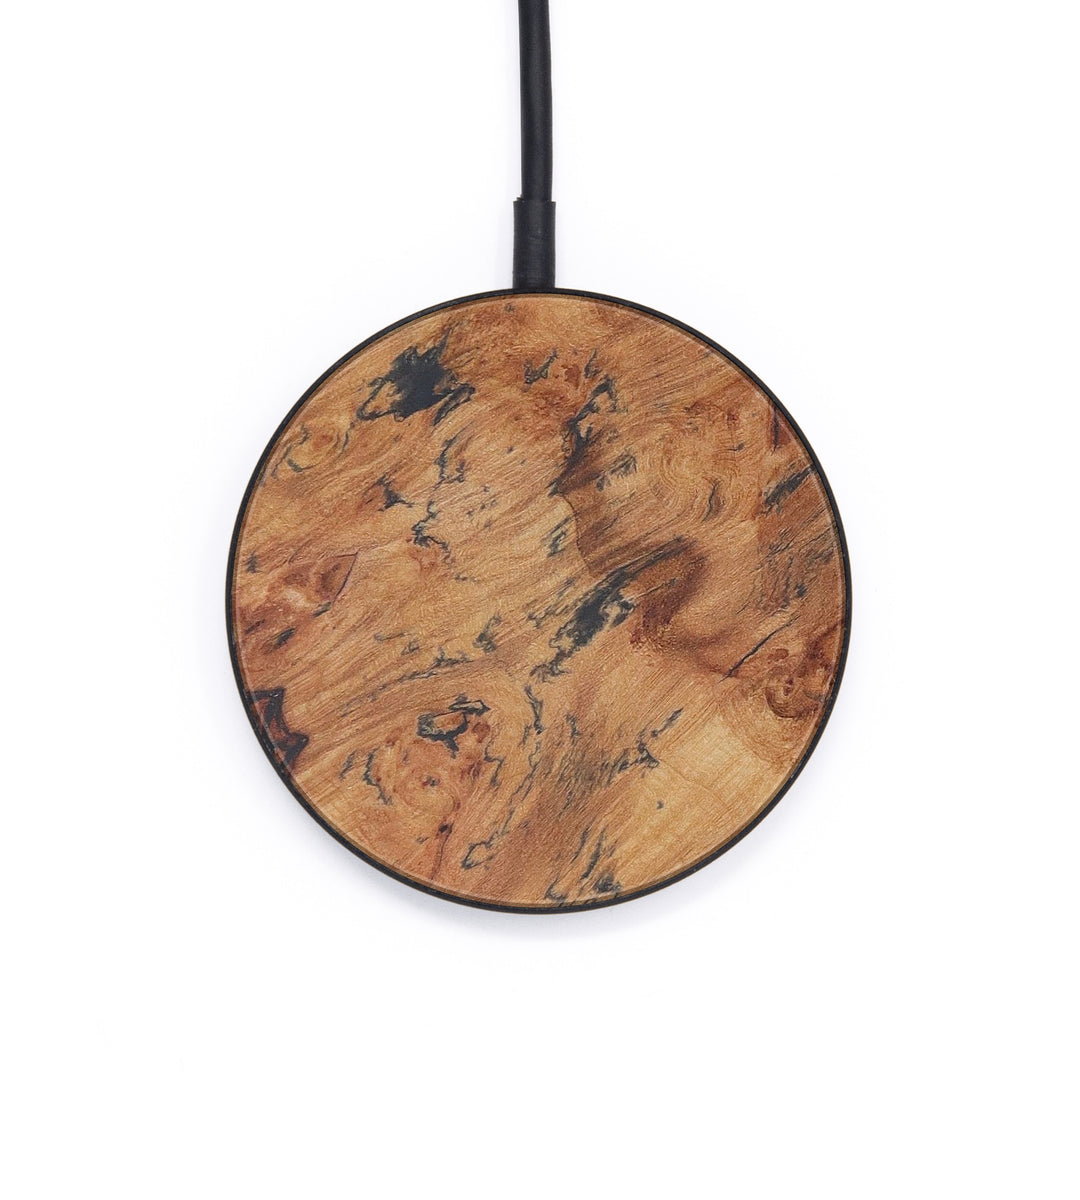 Circle Burl Wood Wireless Charger - Khamdy (Maple Burl, 408762)